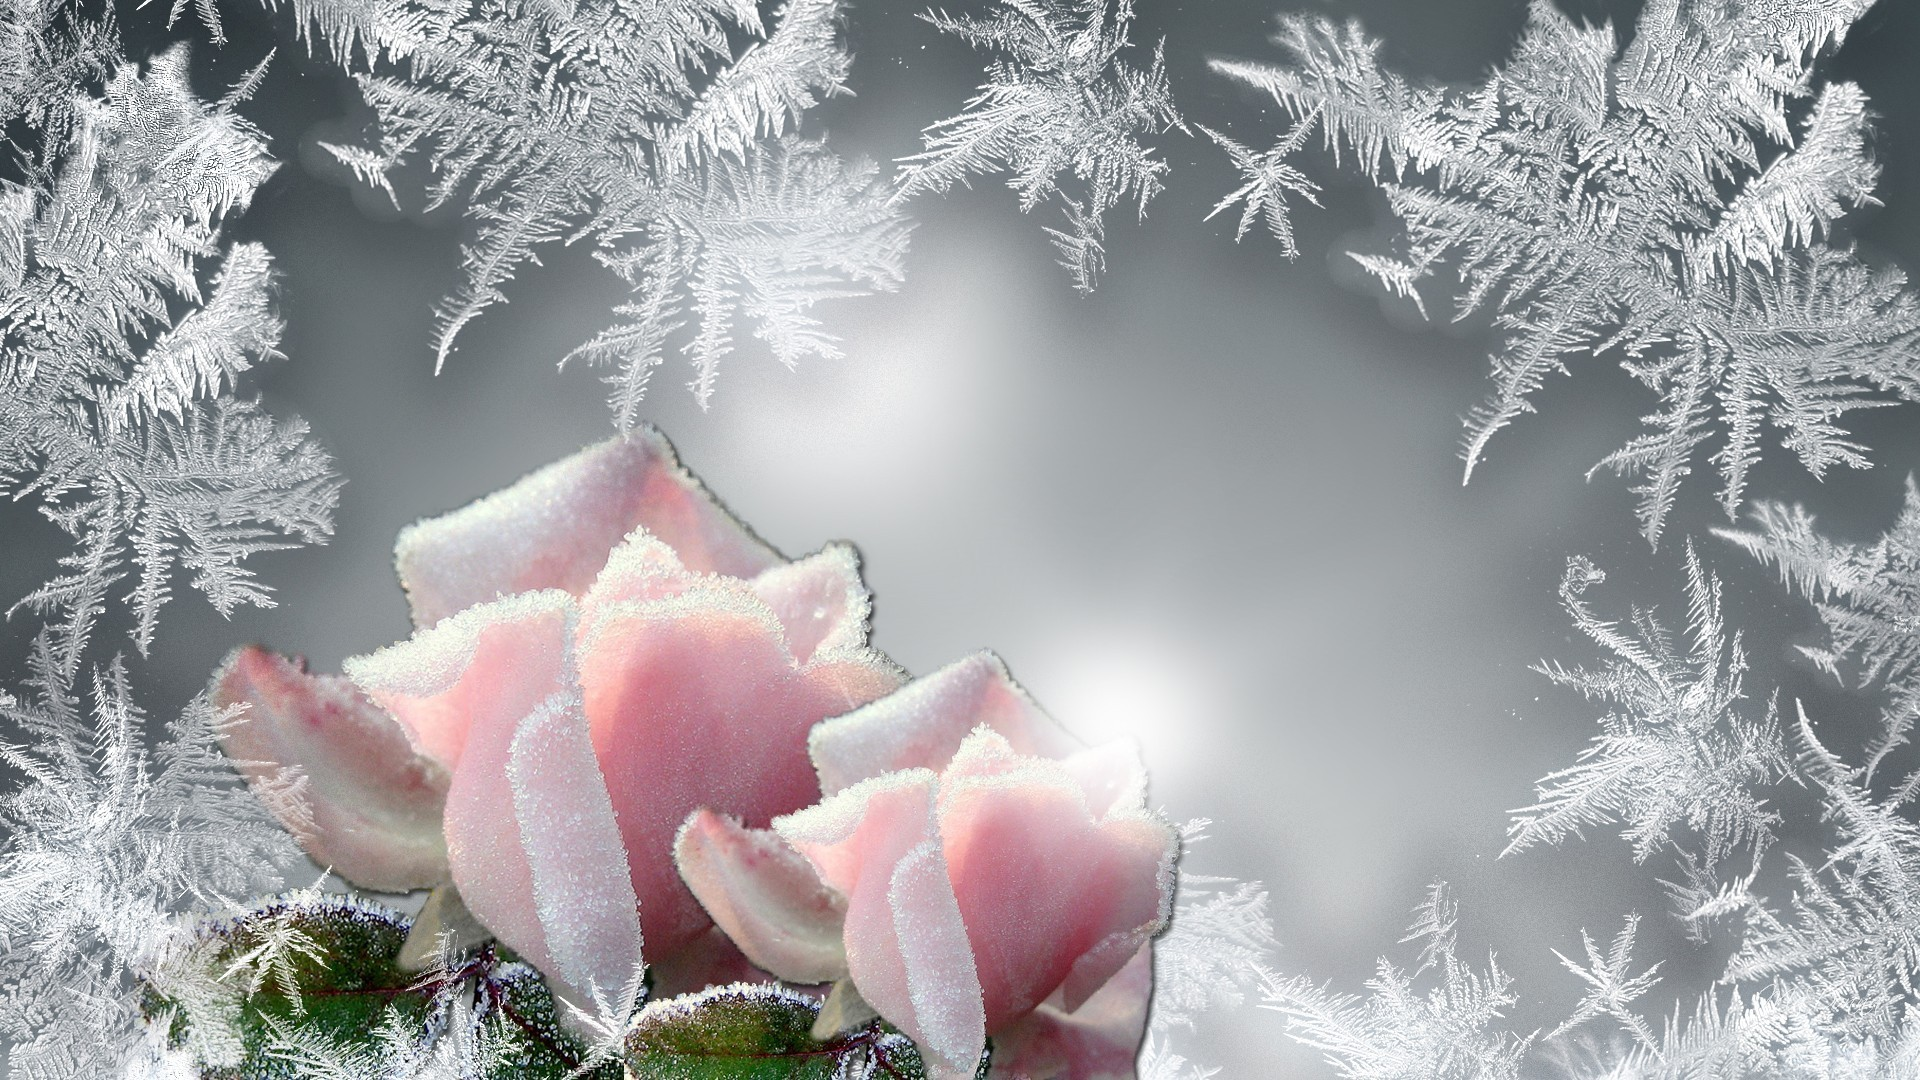 Freeze wallpapers and screensavers 67 images - Rose in snow wallpaper ...